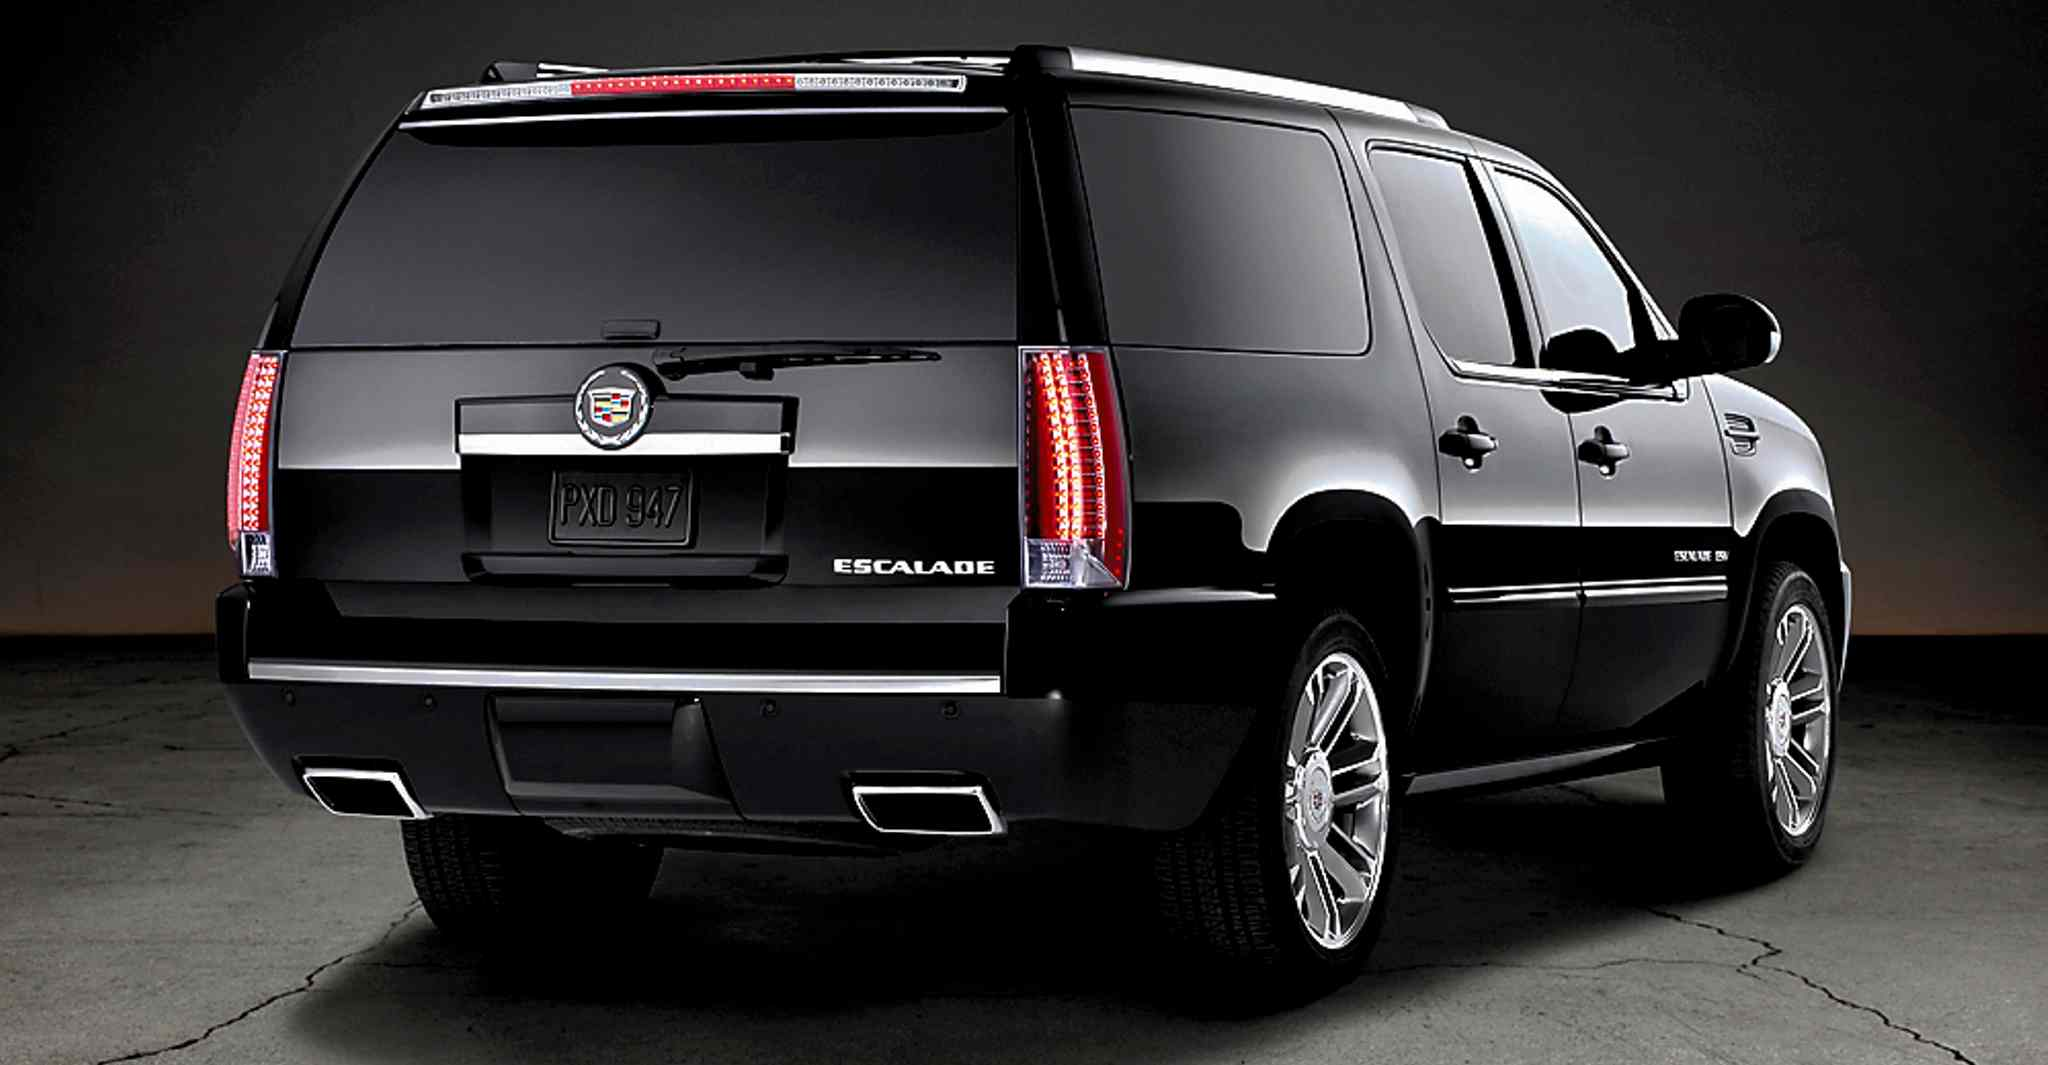 Many lesser pickups offer more utility and comparable luxury, so the Cadillac Escalade EXT is driving off into the sunset.